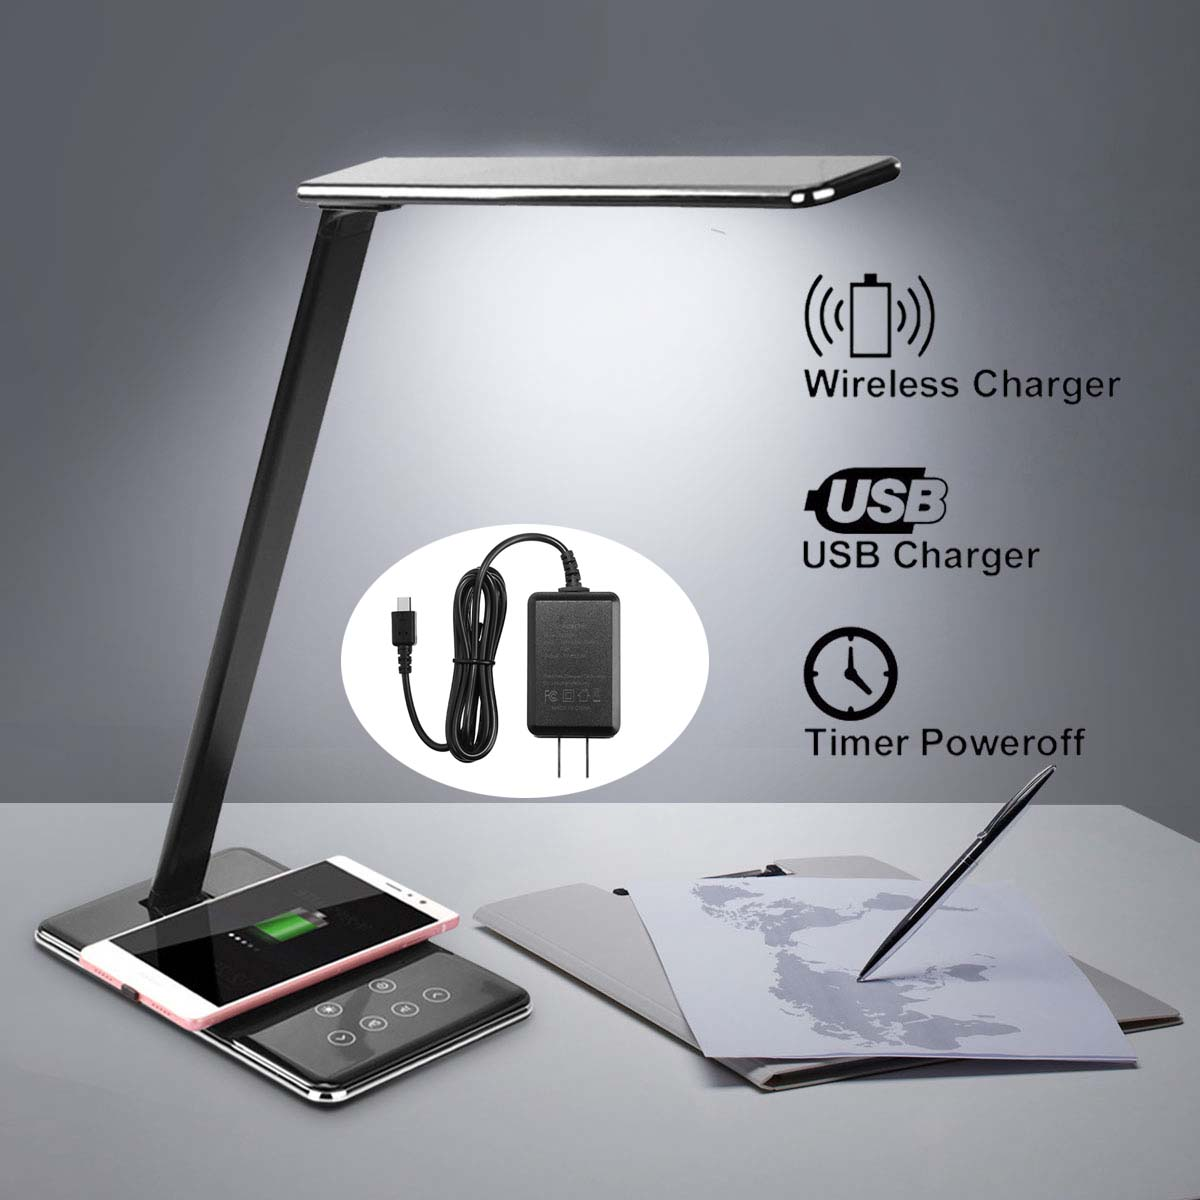 48LED Table Desk Lamp QI Wireless Charging Dimming Touch Switch Reading Light Phone Charger Pad Eye-protect Book Light with Plug